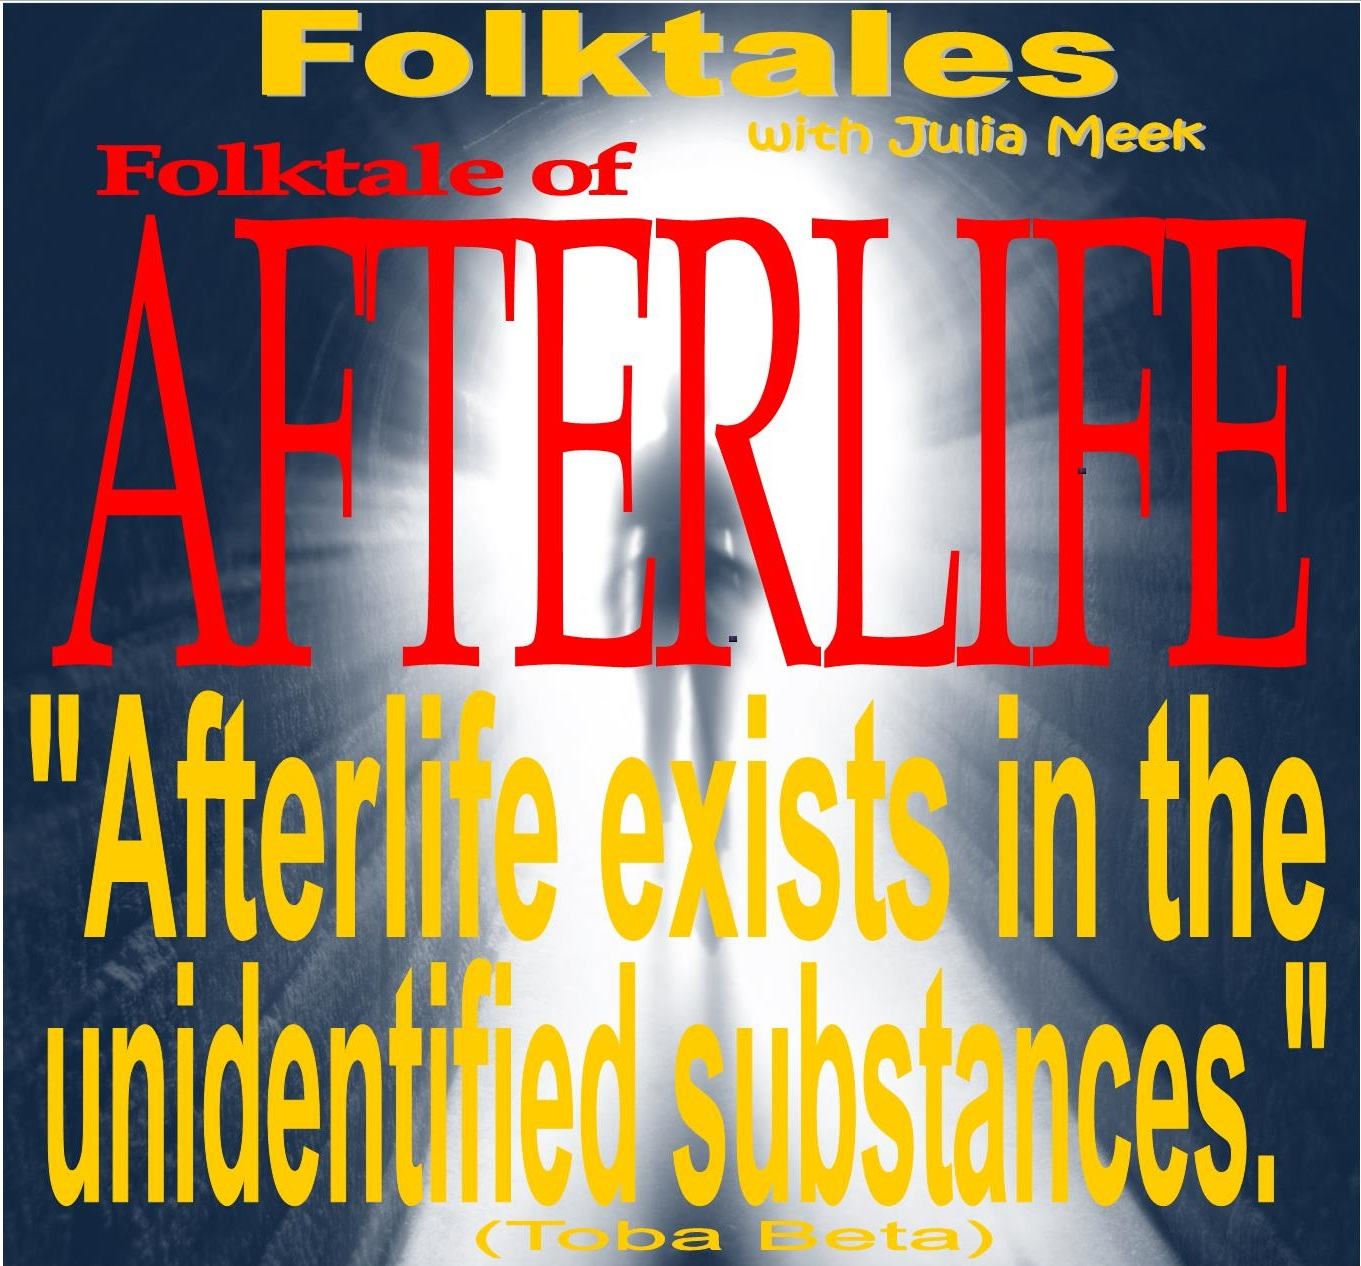 Caption: WBOI's Folktale of the Afterlife, Credit: Julia Meek